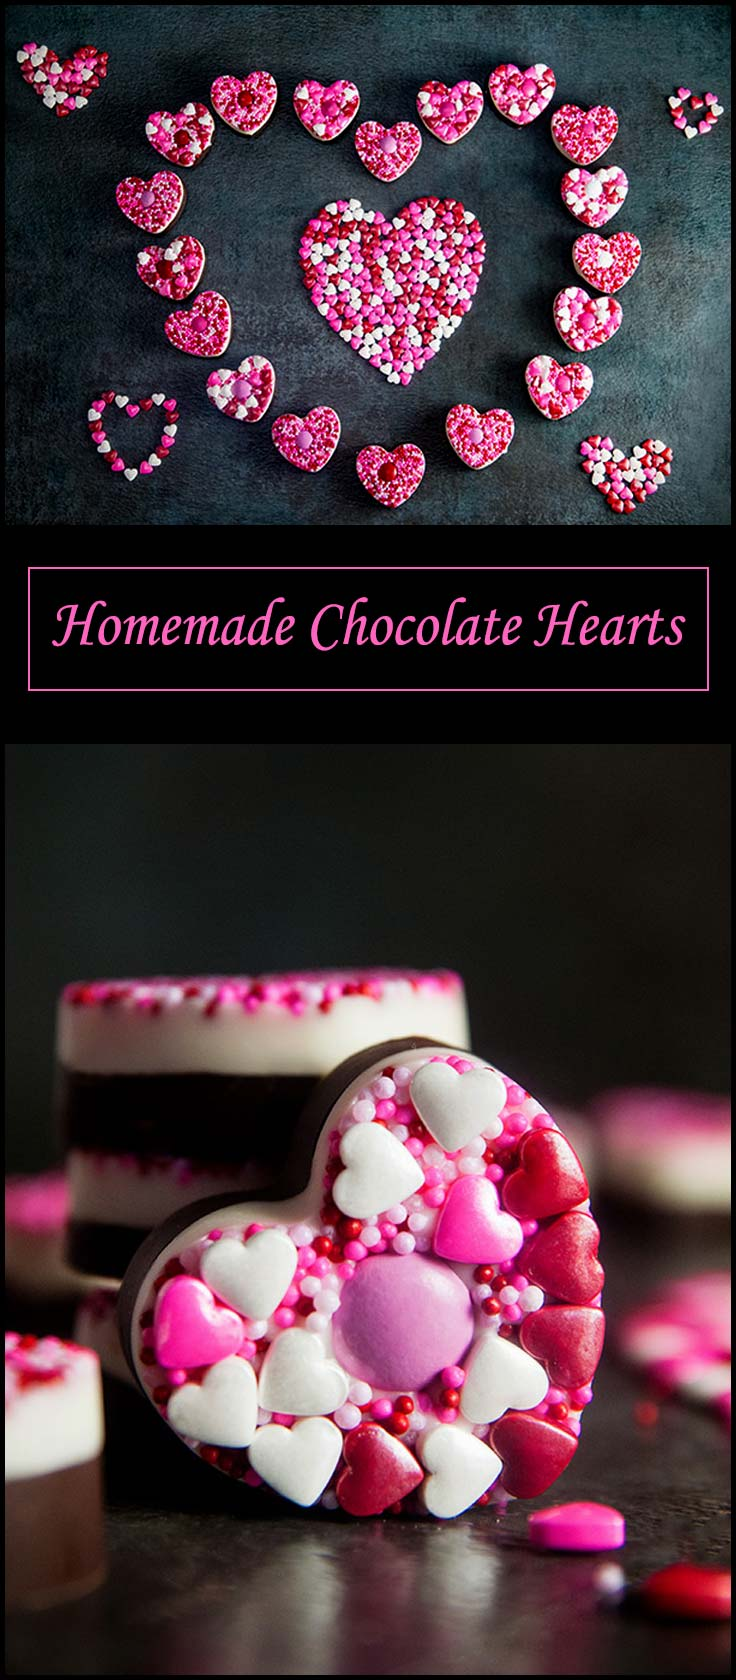 Homemade Chocolate Hearts from www.seasonedsprinkles.com